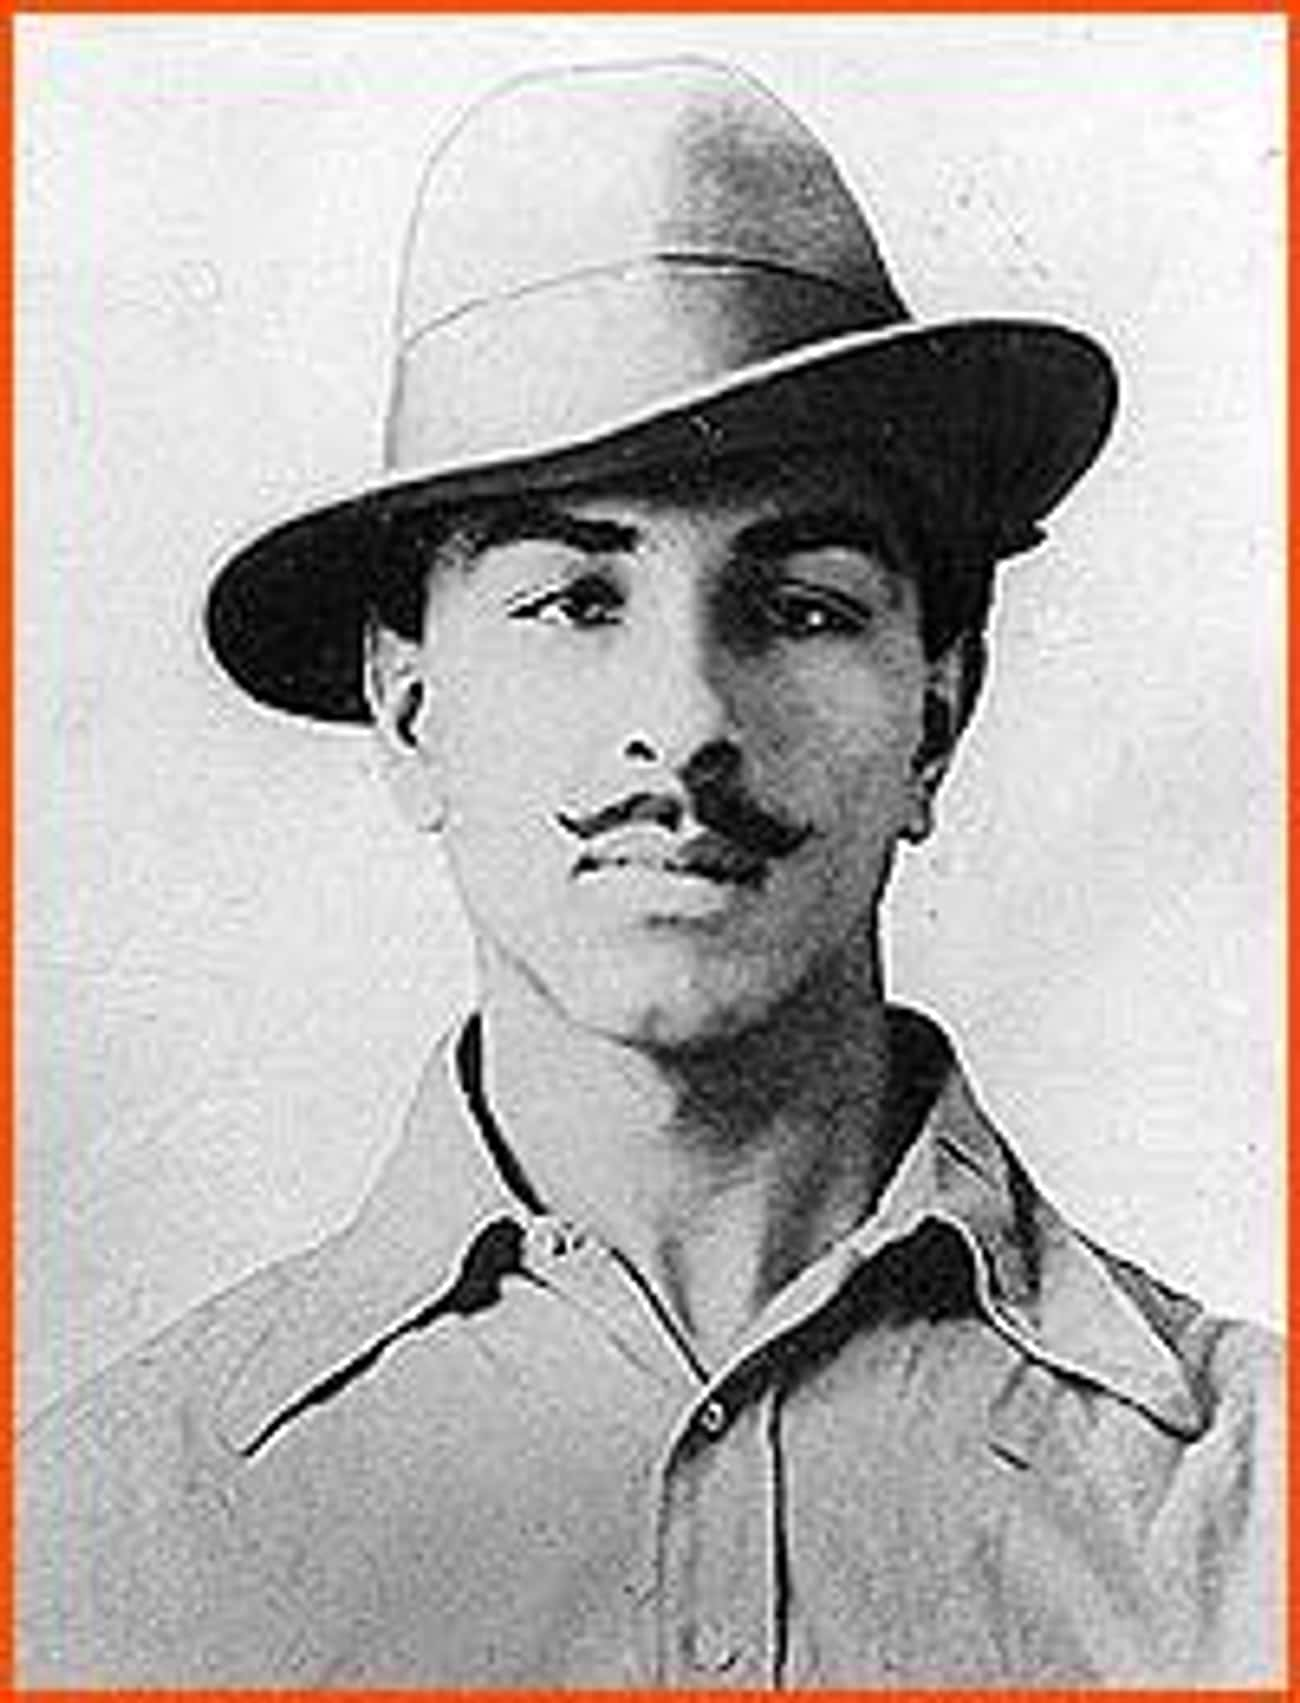 Bhagat Singh is listed (or ranked) 4 on the list Famous People Who Died by Hanging